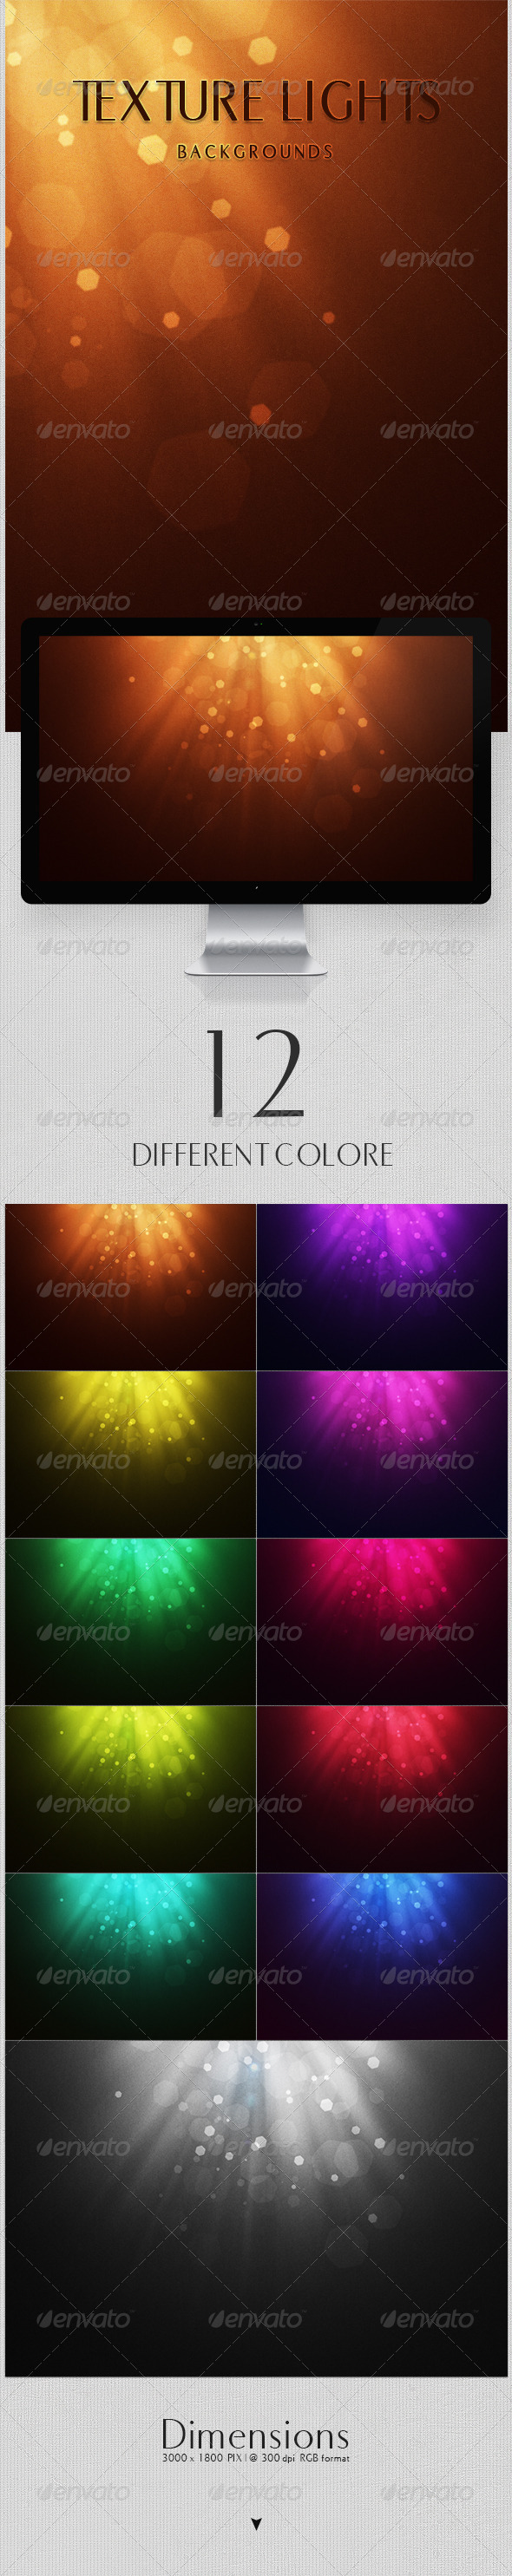 Texture Lights Backgrounds - Abstract Backgrounds